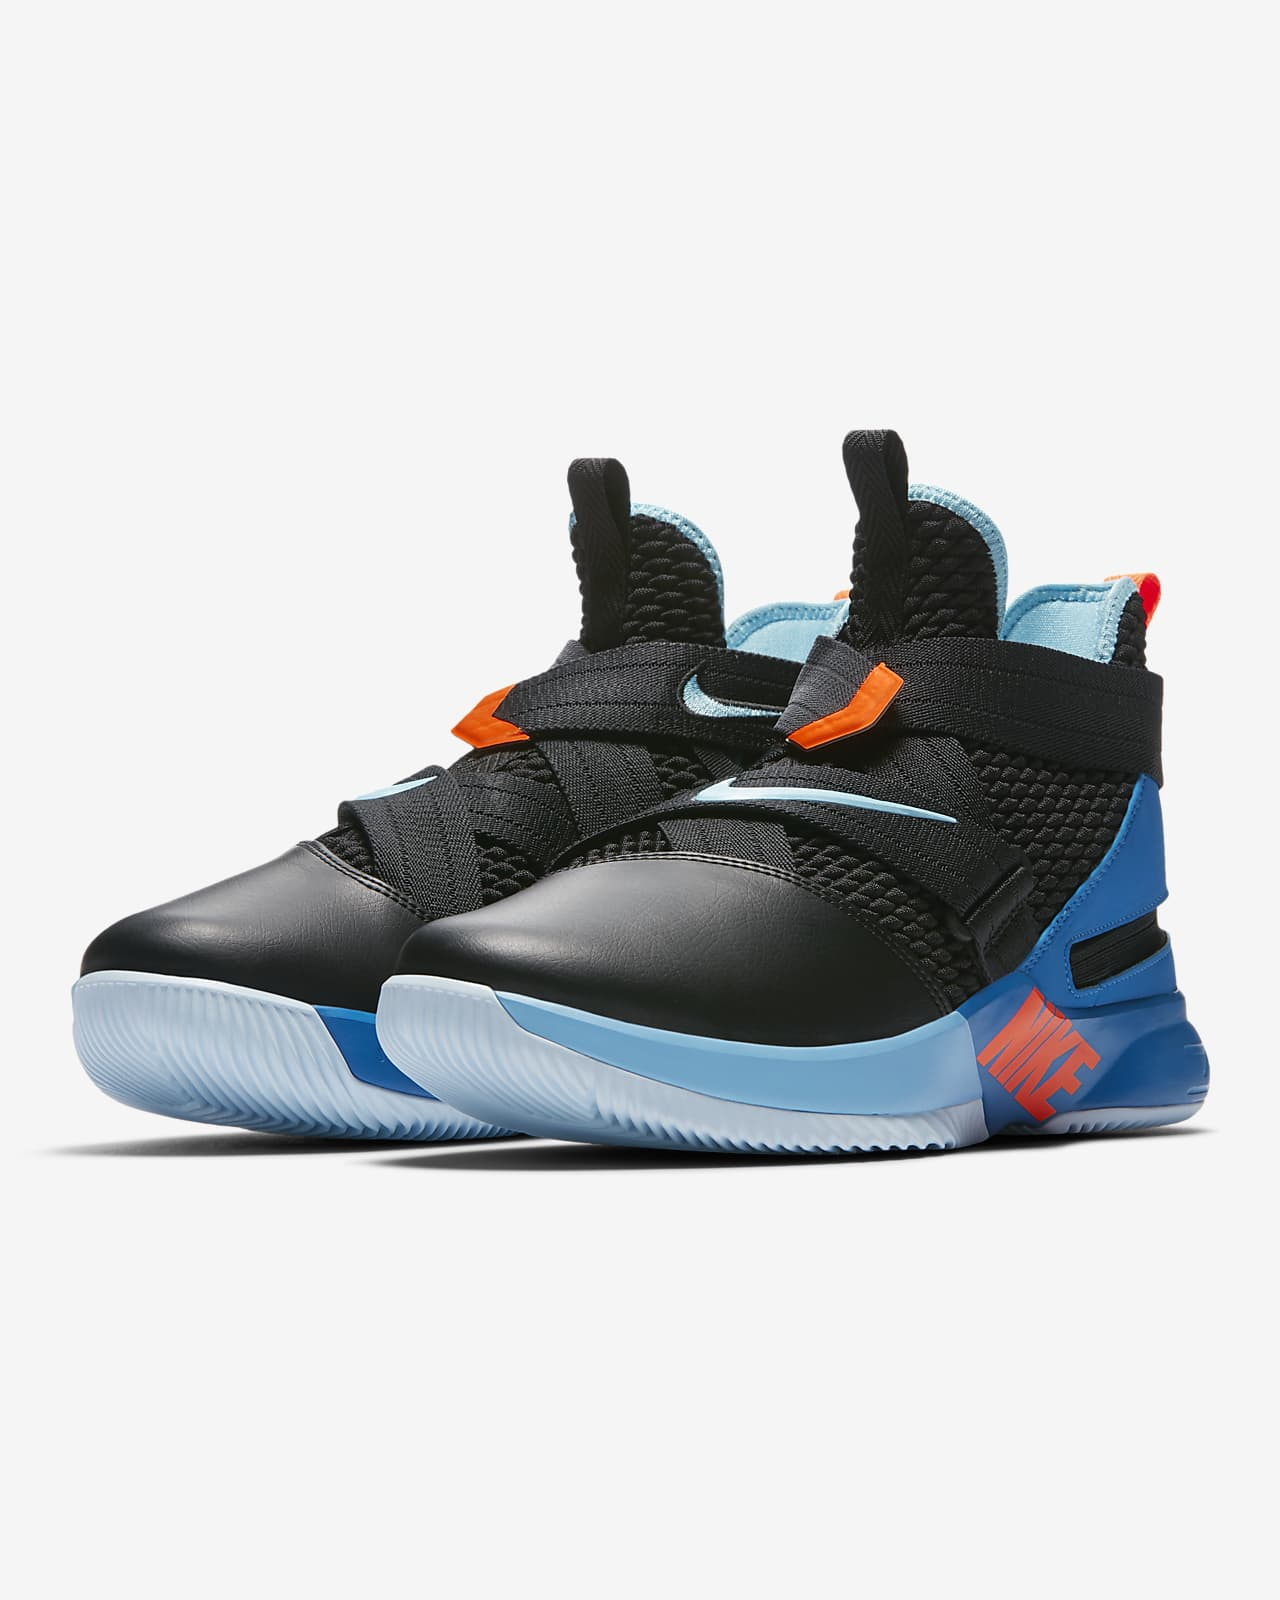 lebron extra wide shoes